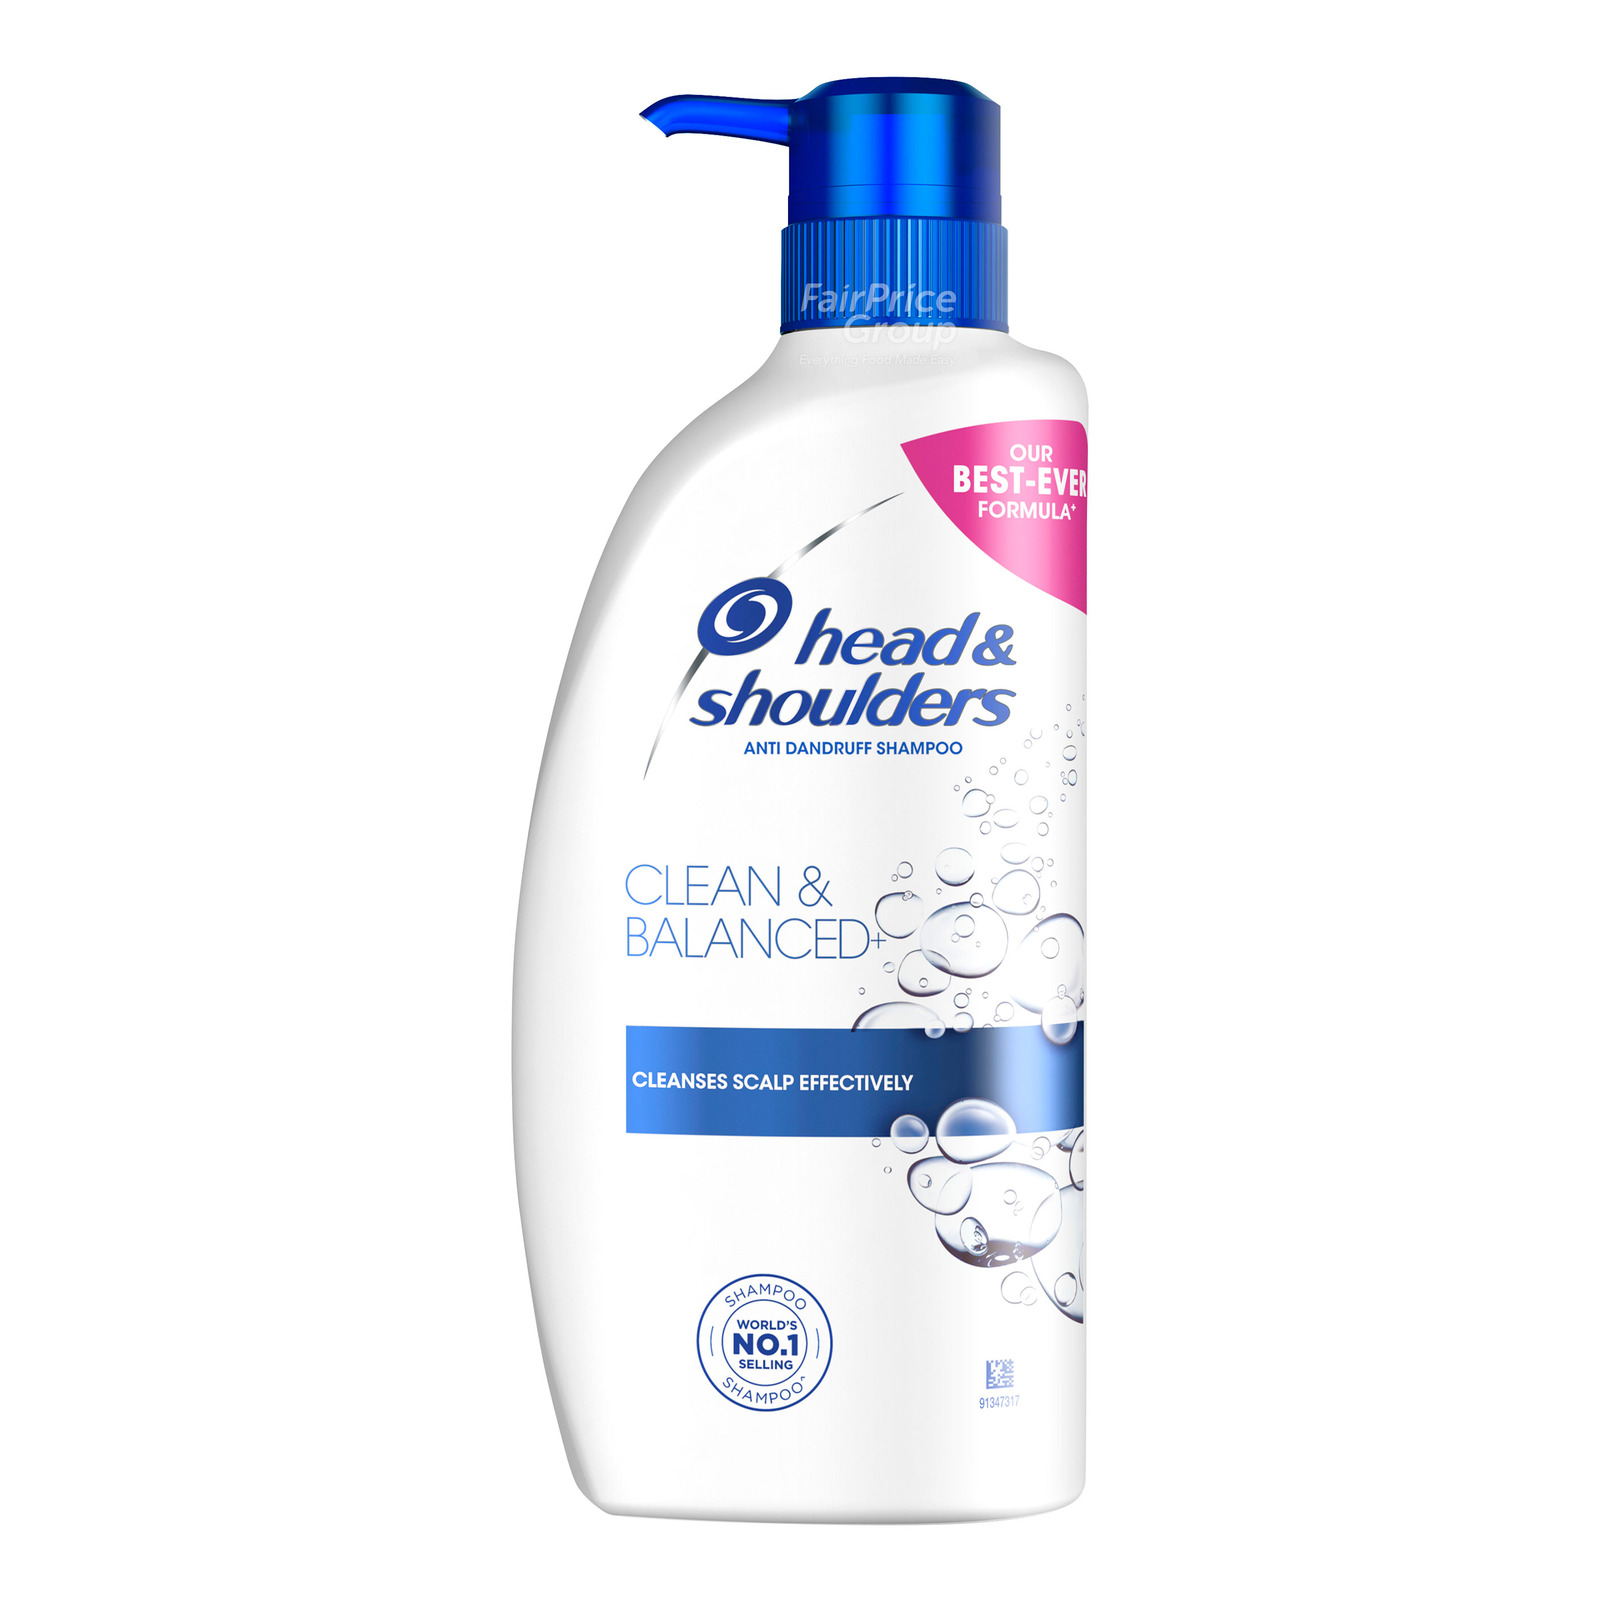 Head & Shoulders Anti-Dandruff Shampoo - Clean & Balanced